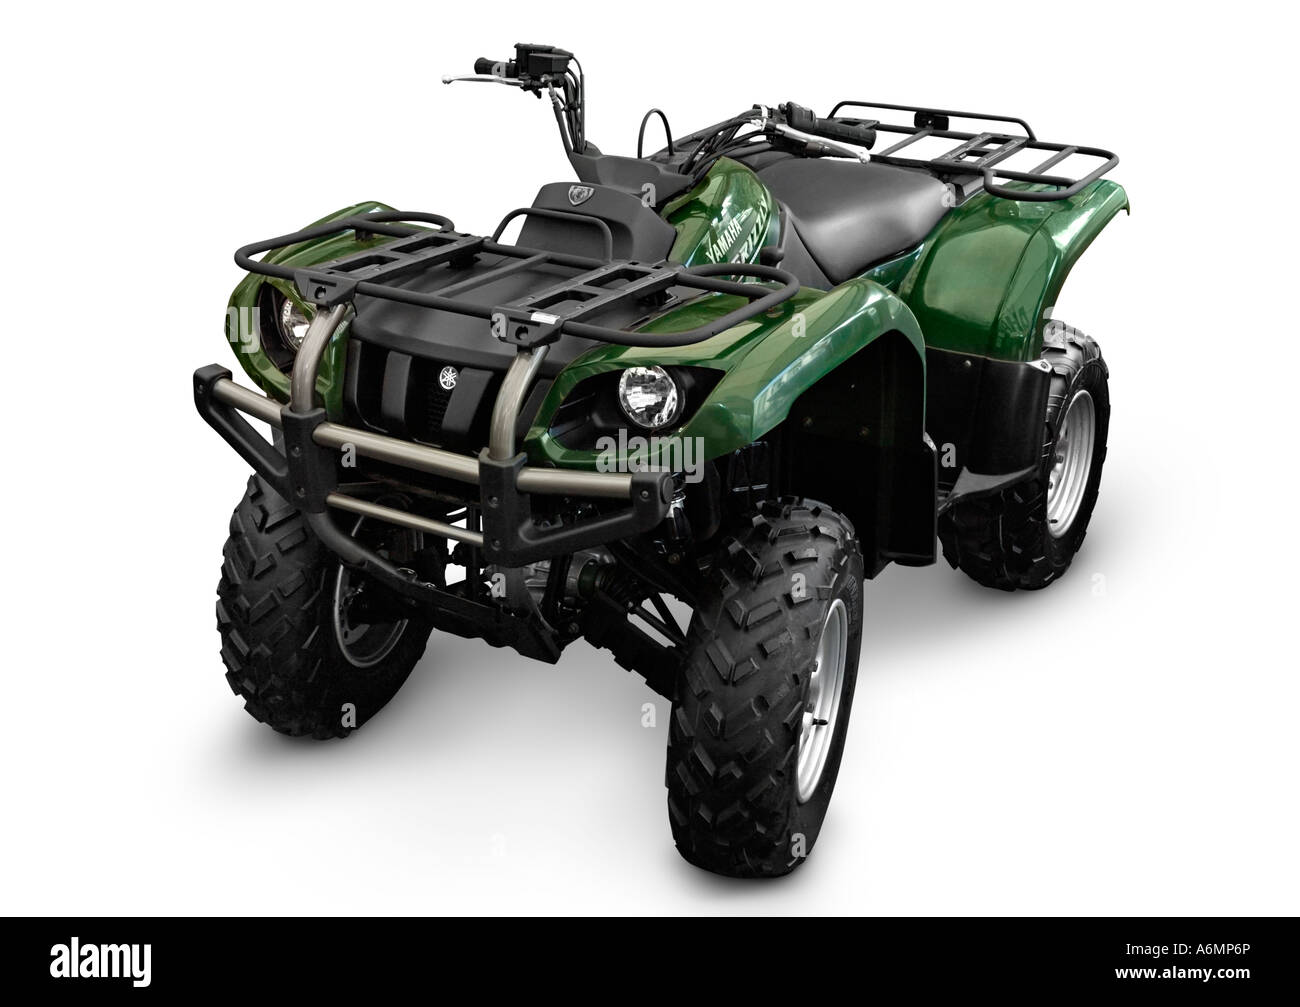 Yamaha ATV YFM 660 FWA Grizzly 4X4 - Stock Image